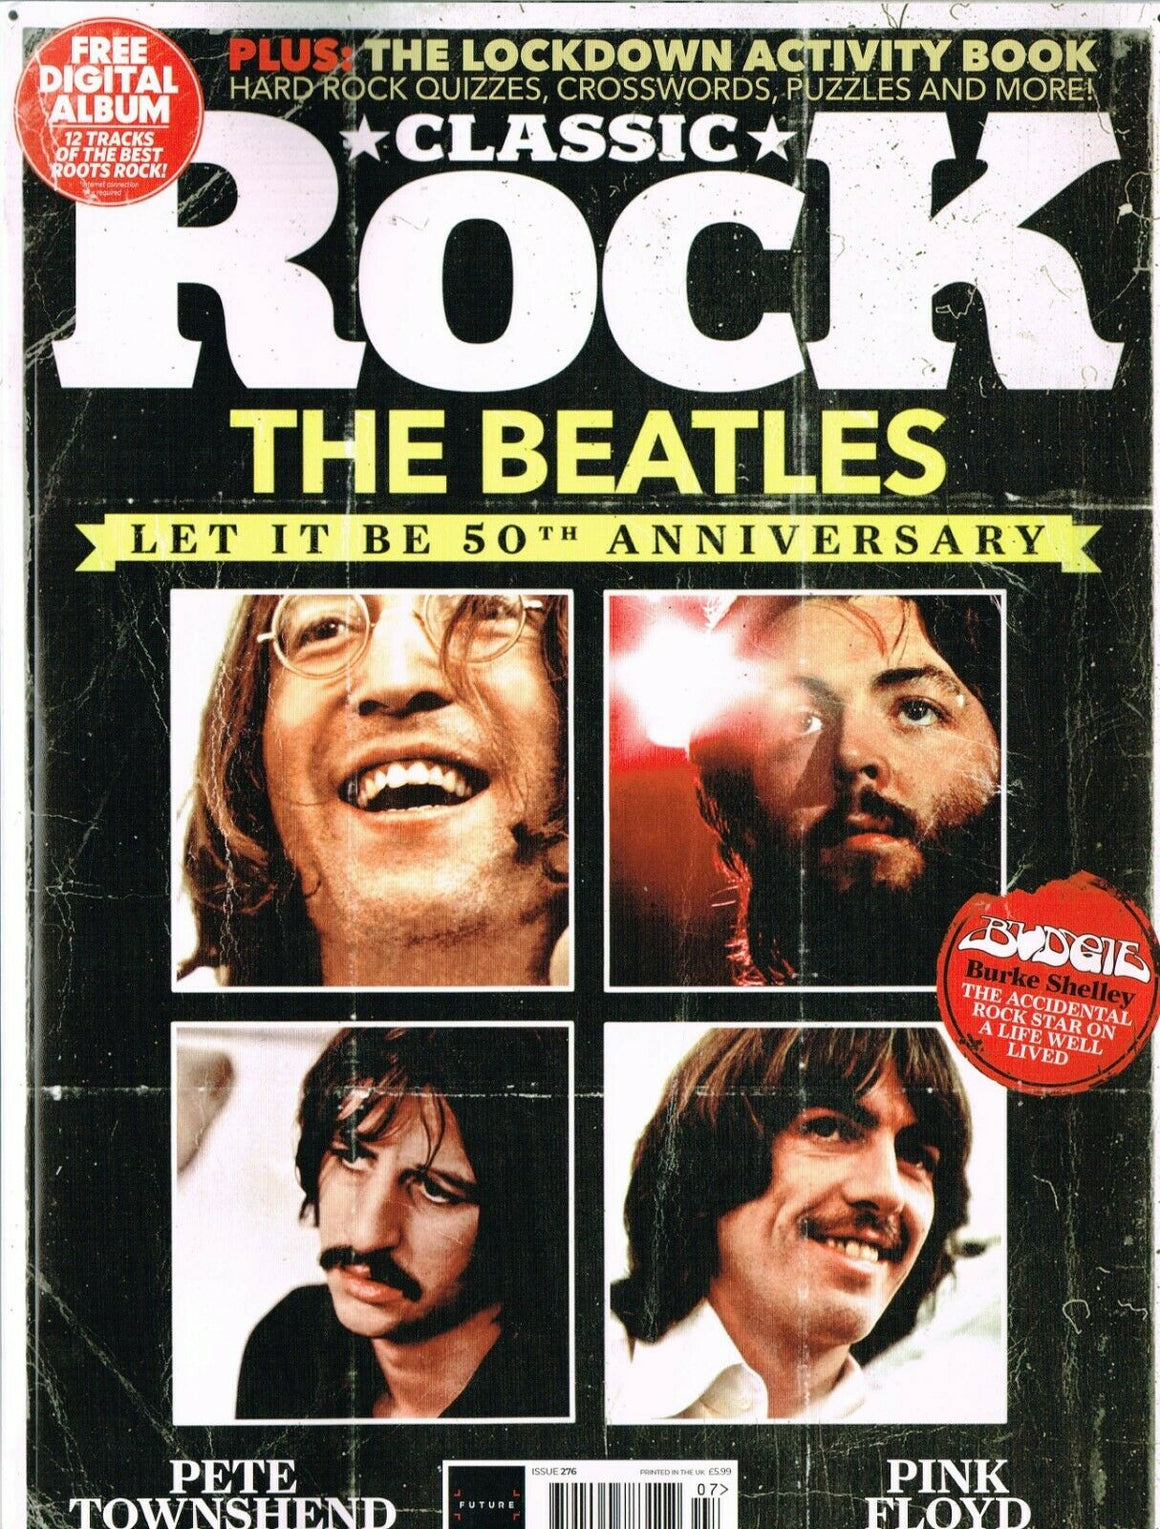 CLASSIC ROCK Magazine #276 THE BEATLES ANNIVERSARY Let It Be